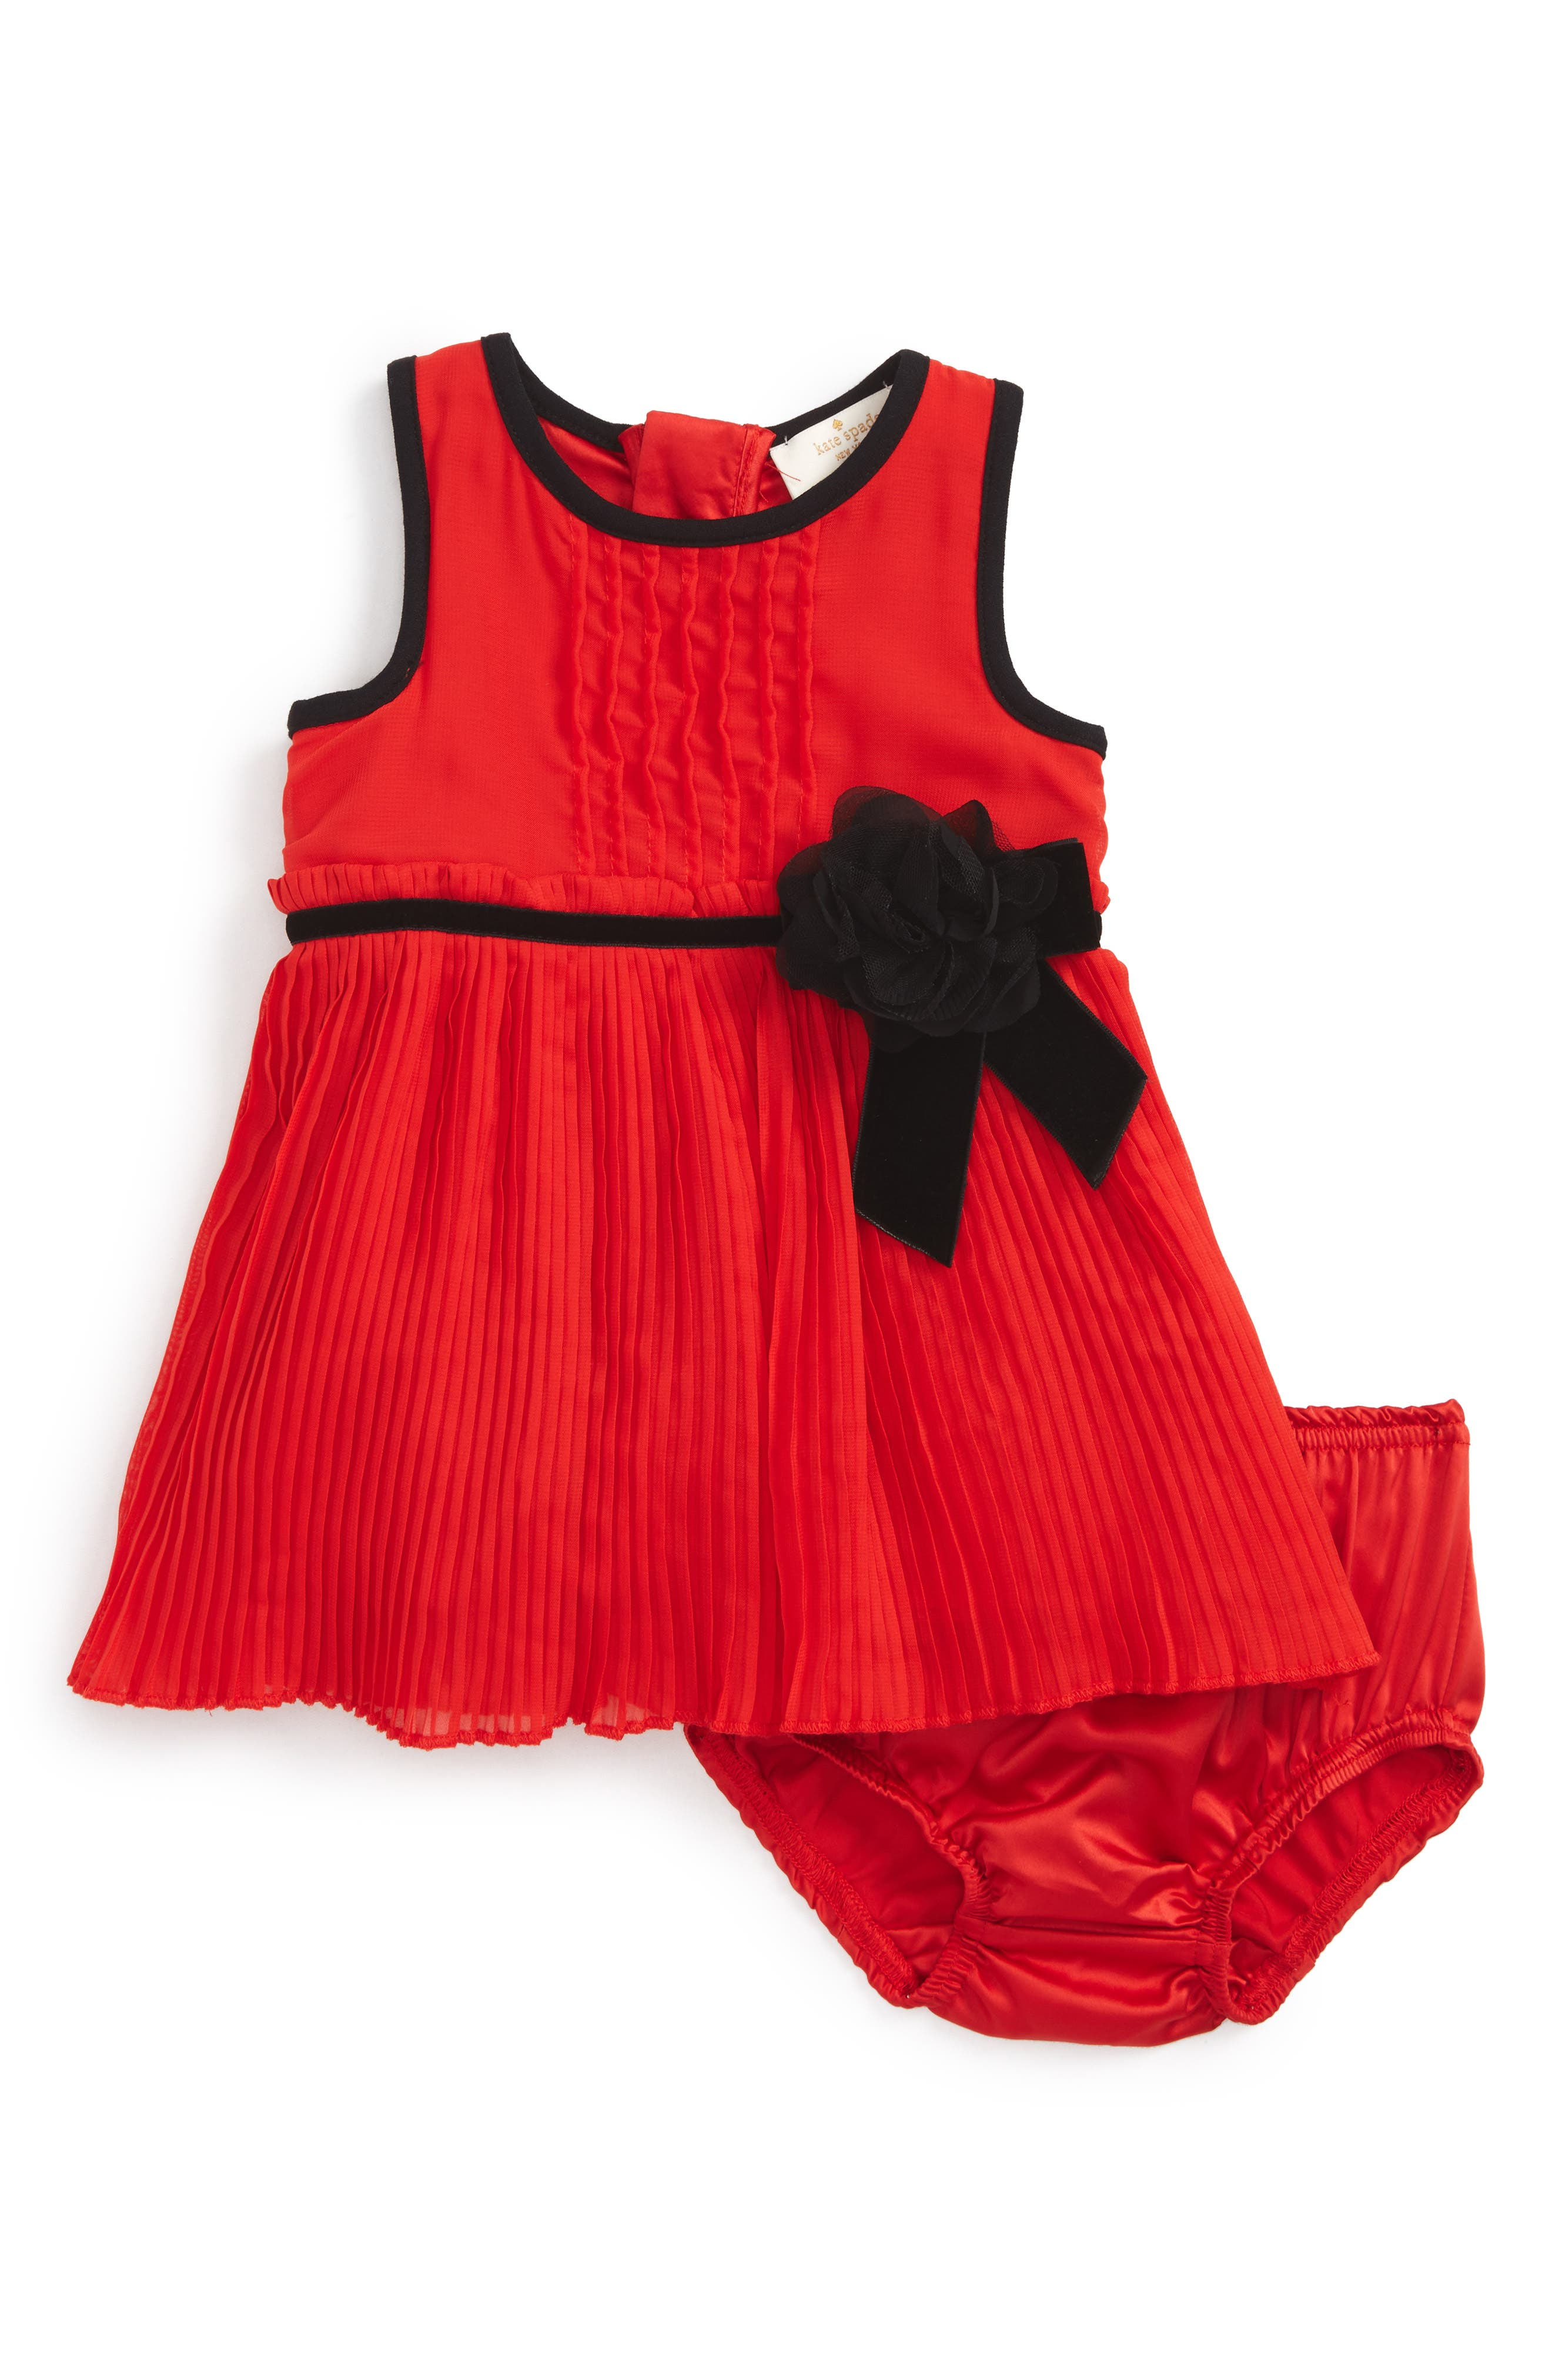 Alternate Image 1 Selected - kate spade new york chiffon dress (Baby Girls)